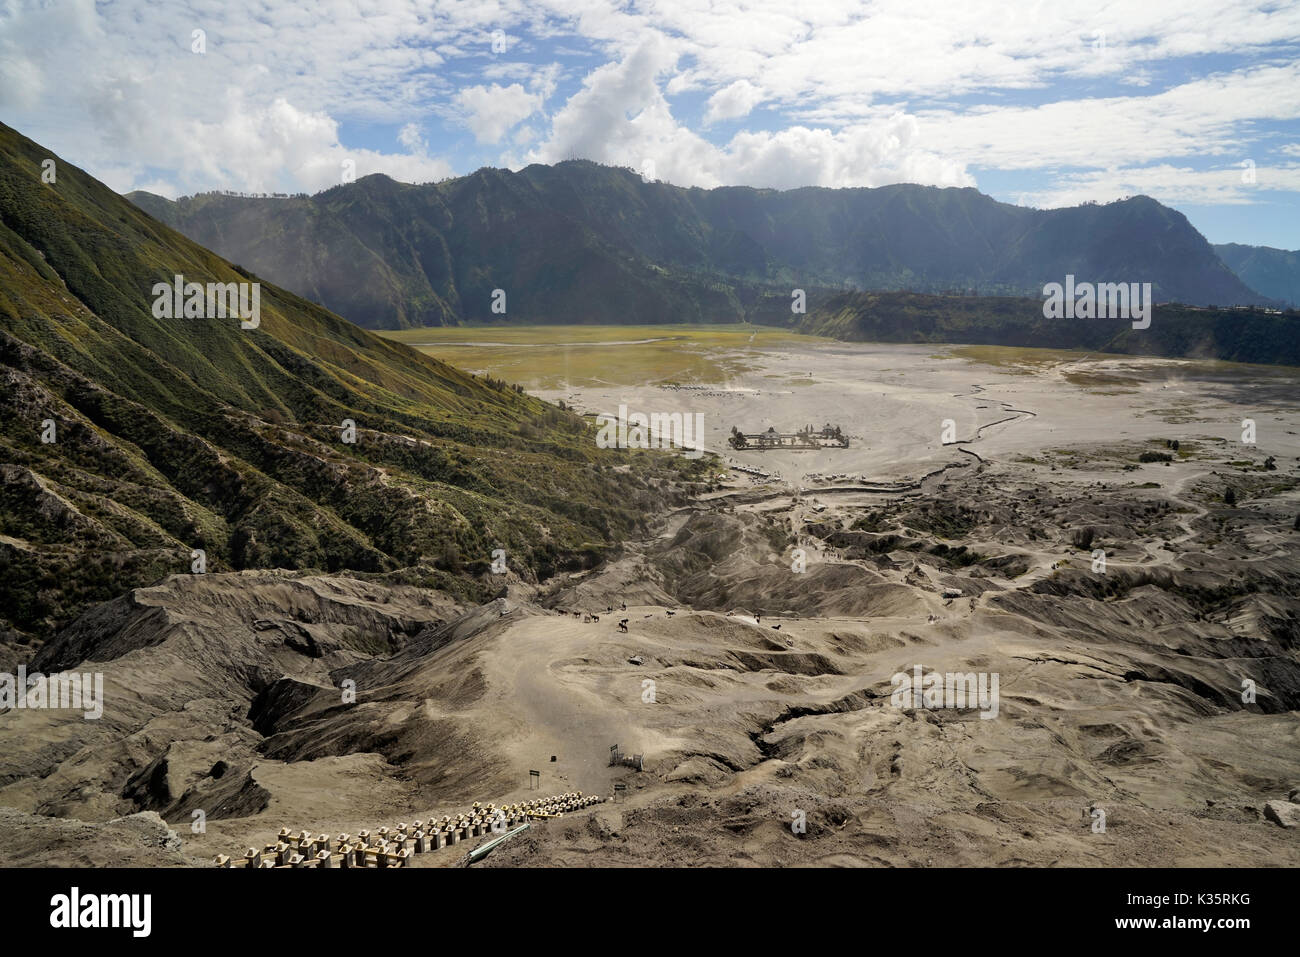 Panoramic view from  the top of the stairs heading towards the dusty valley with buddhist temple at the foot of mount Batok at the Tengger Semeru Nati - Stock Image